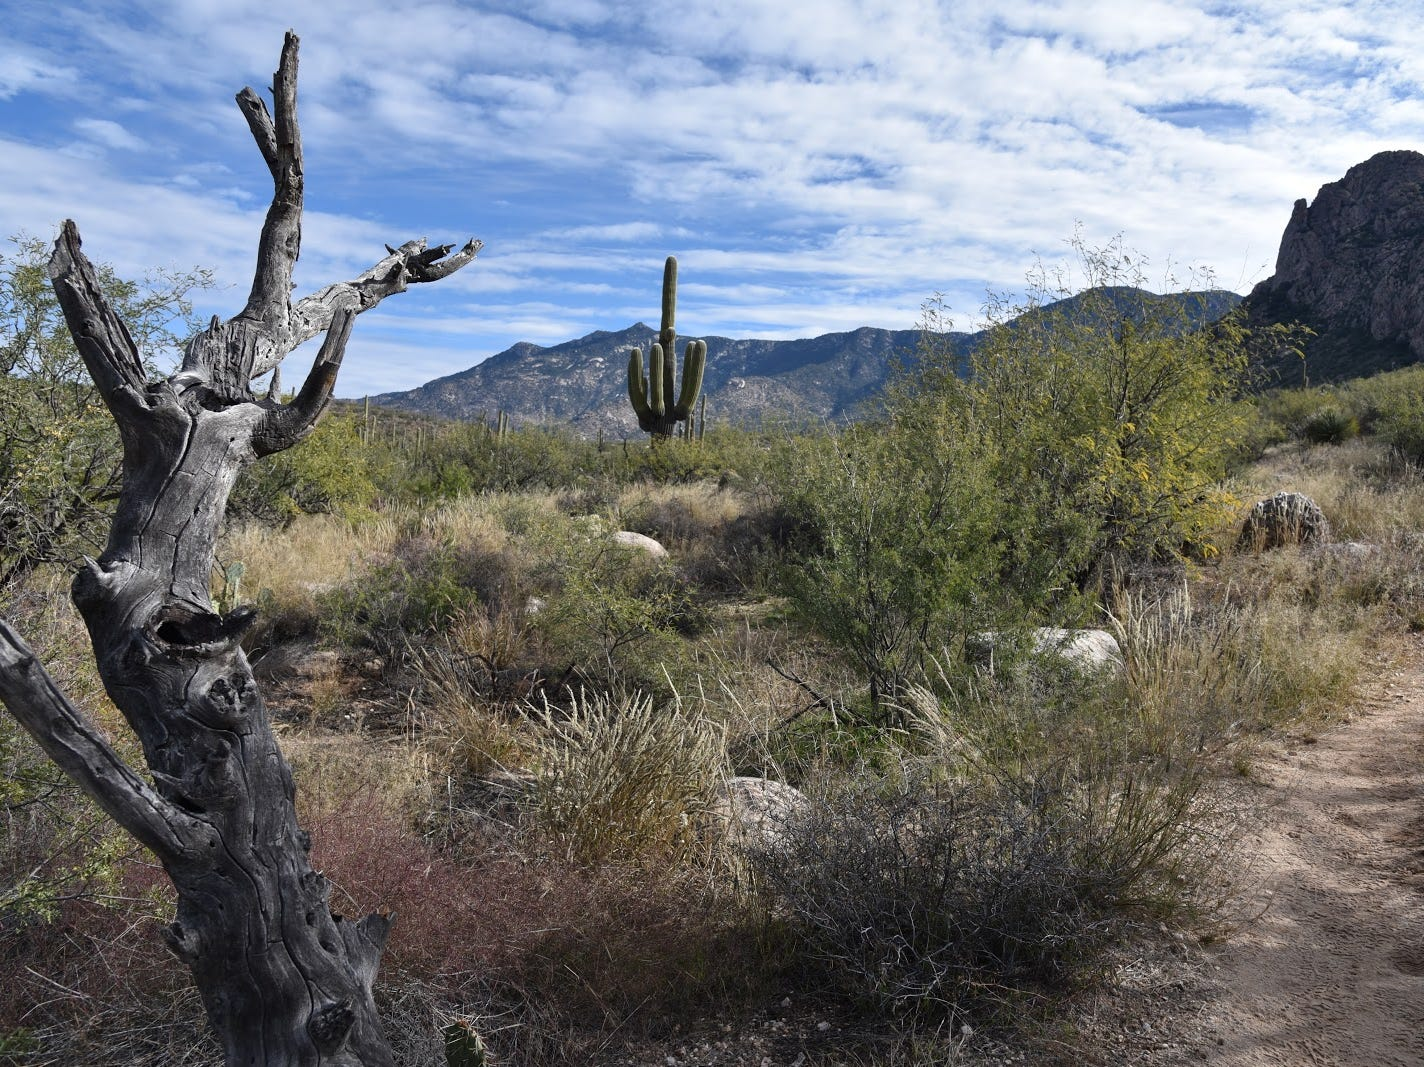 At the edge of the Catalina State Park boundary, the trail feels more wild.